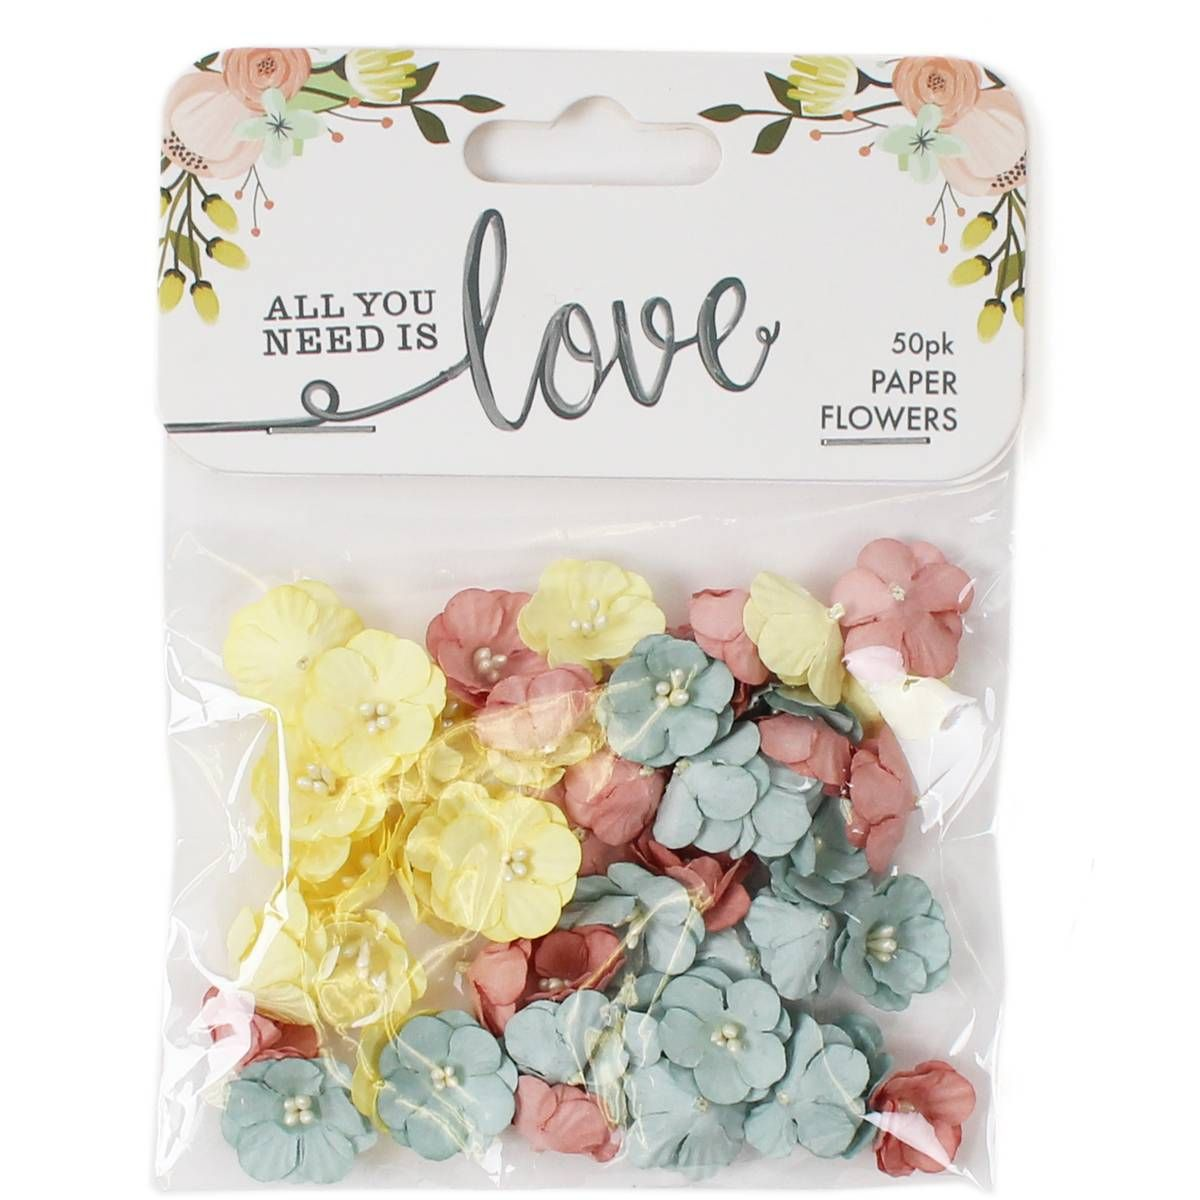 All You Need Is Love Paper Flowers 50 Pack Hobbycraft Craft